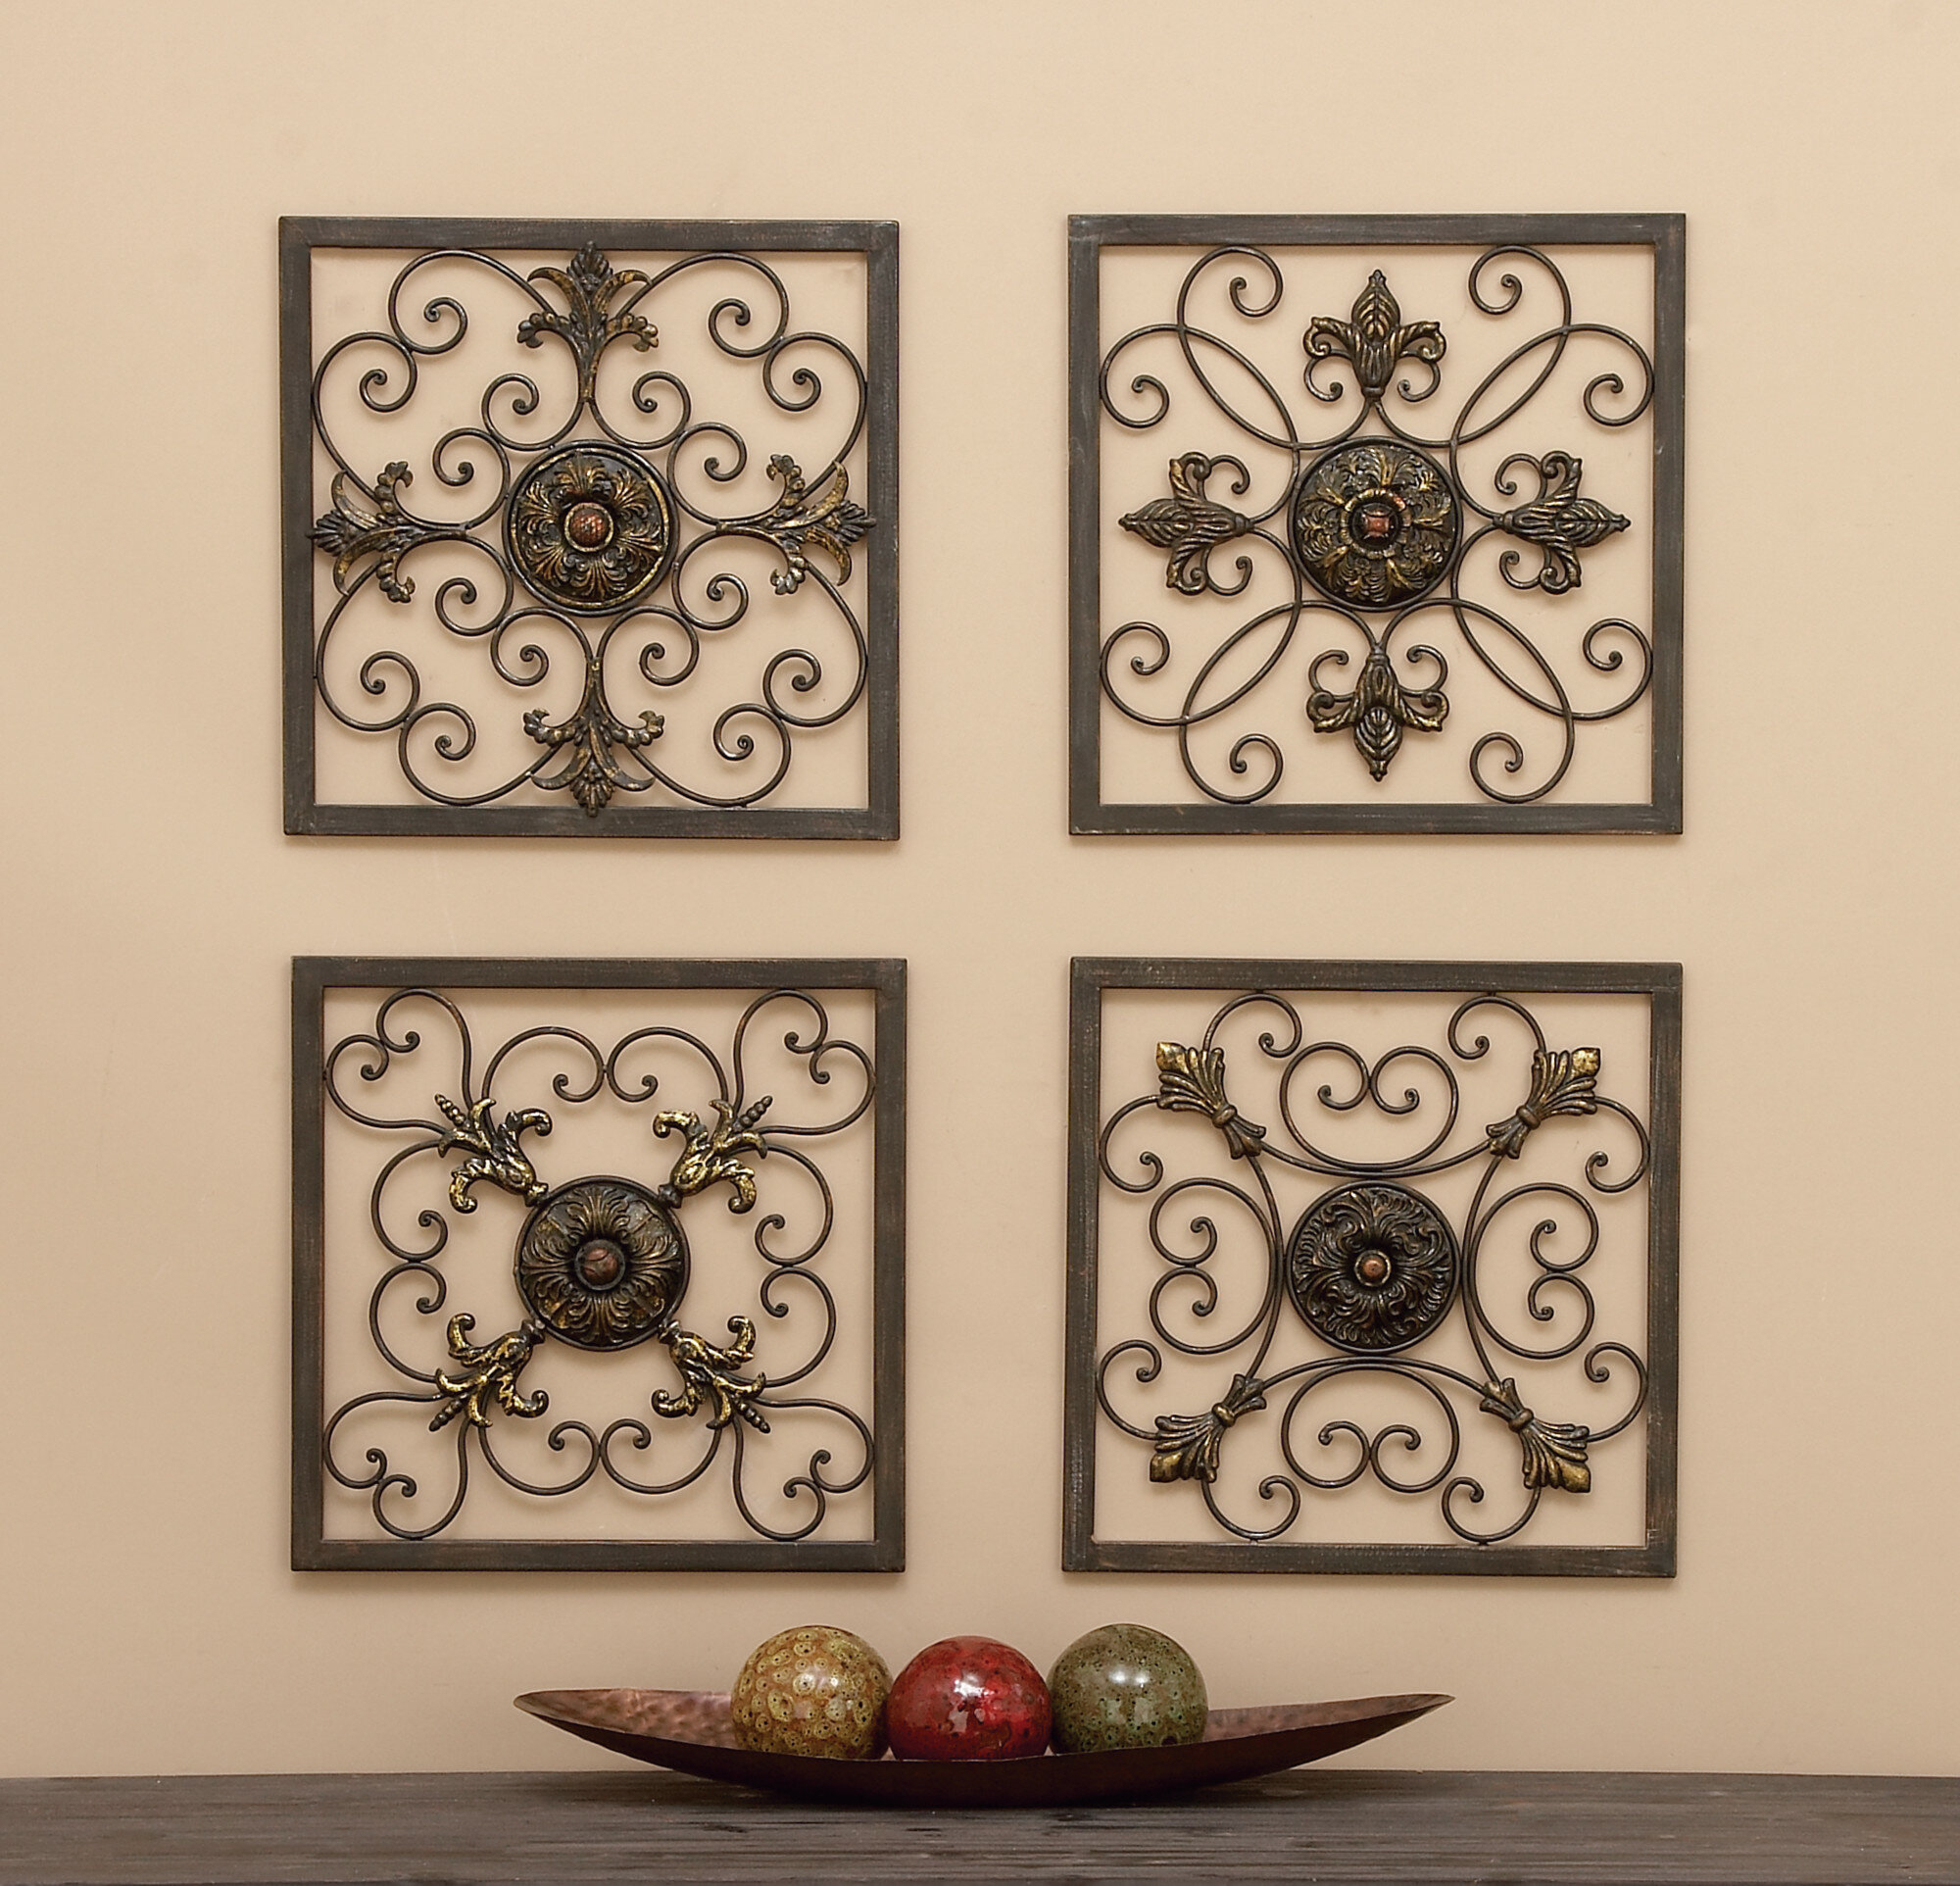 3 Piece Magnolia Brown Panel Wall Decor Sets Intended For Most Current Cole & Grey 4 Piece Metal Wall Plaque Décor Set & Reviews (View 4 of 20)